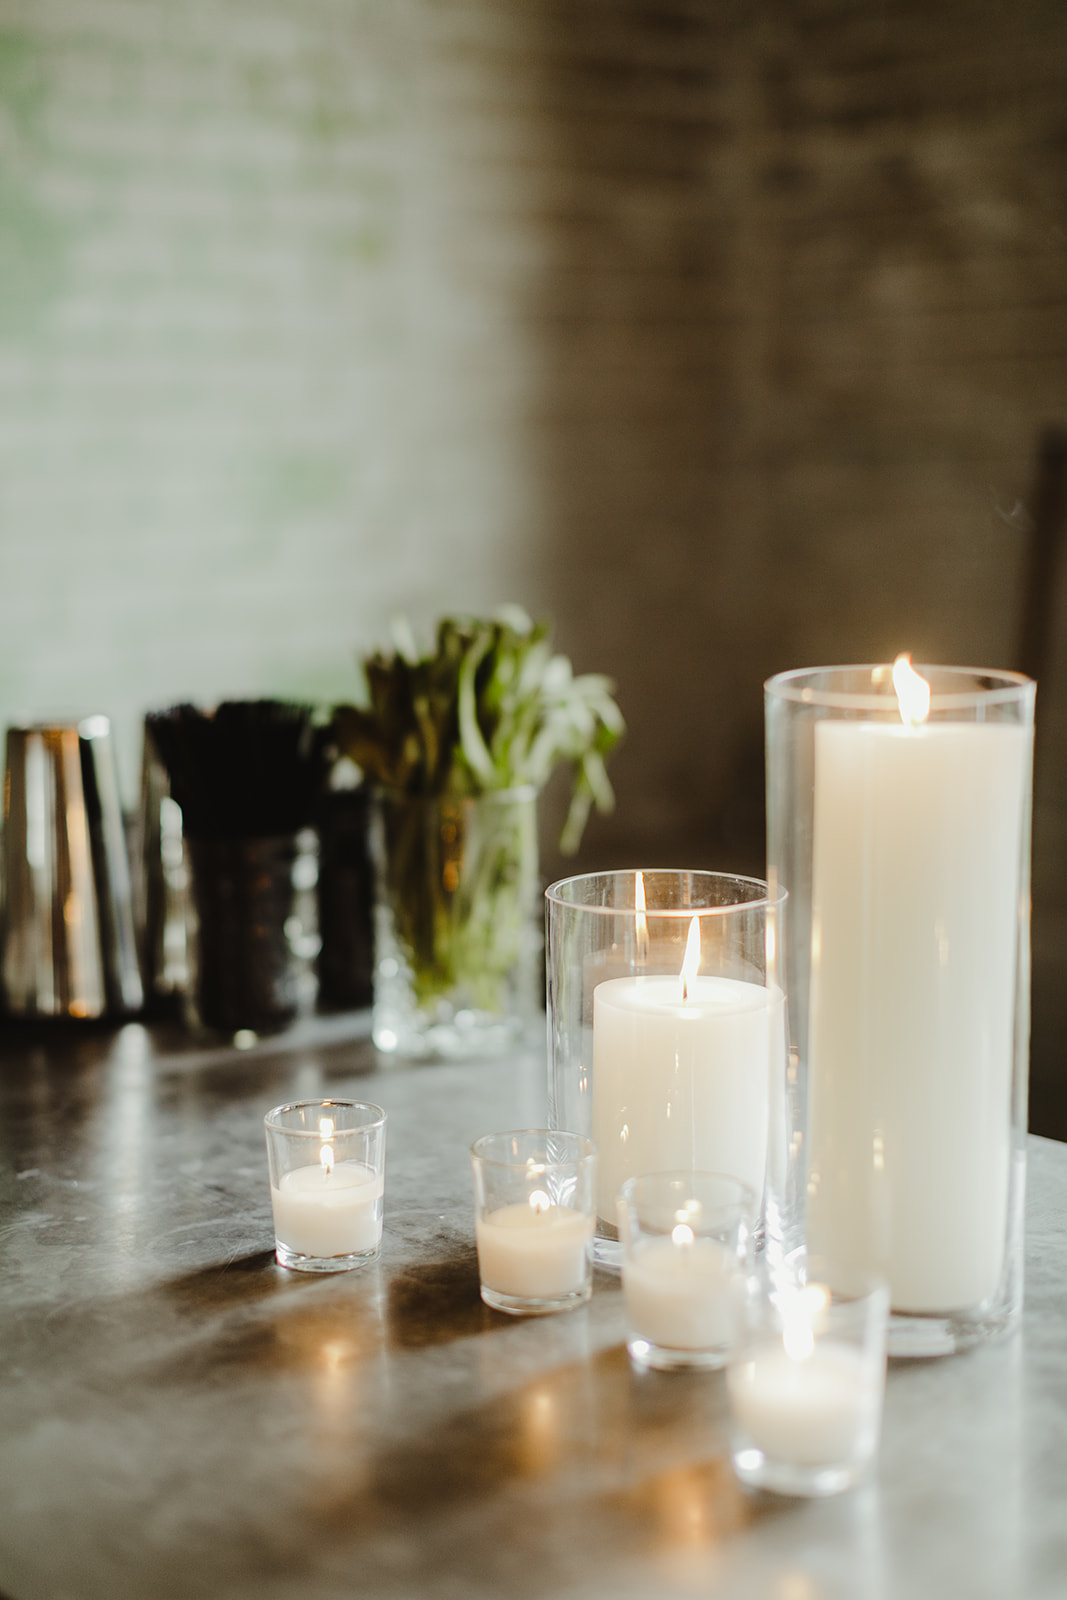 Candles on a bar